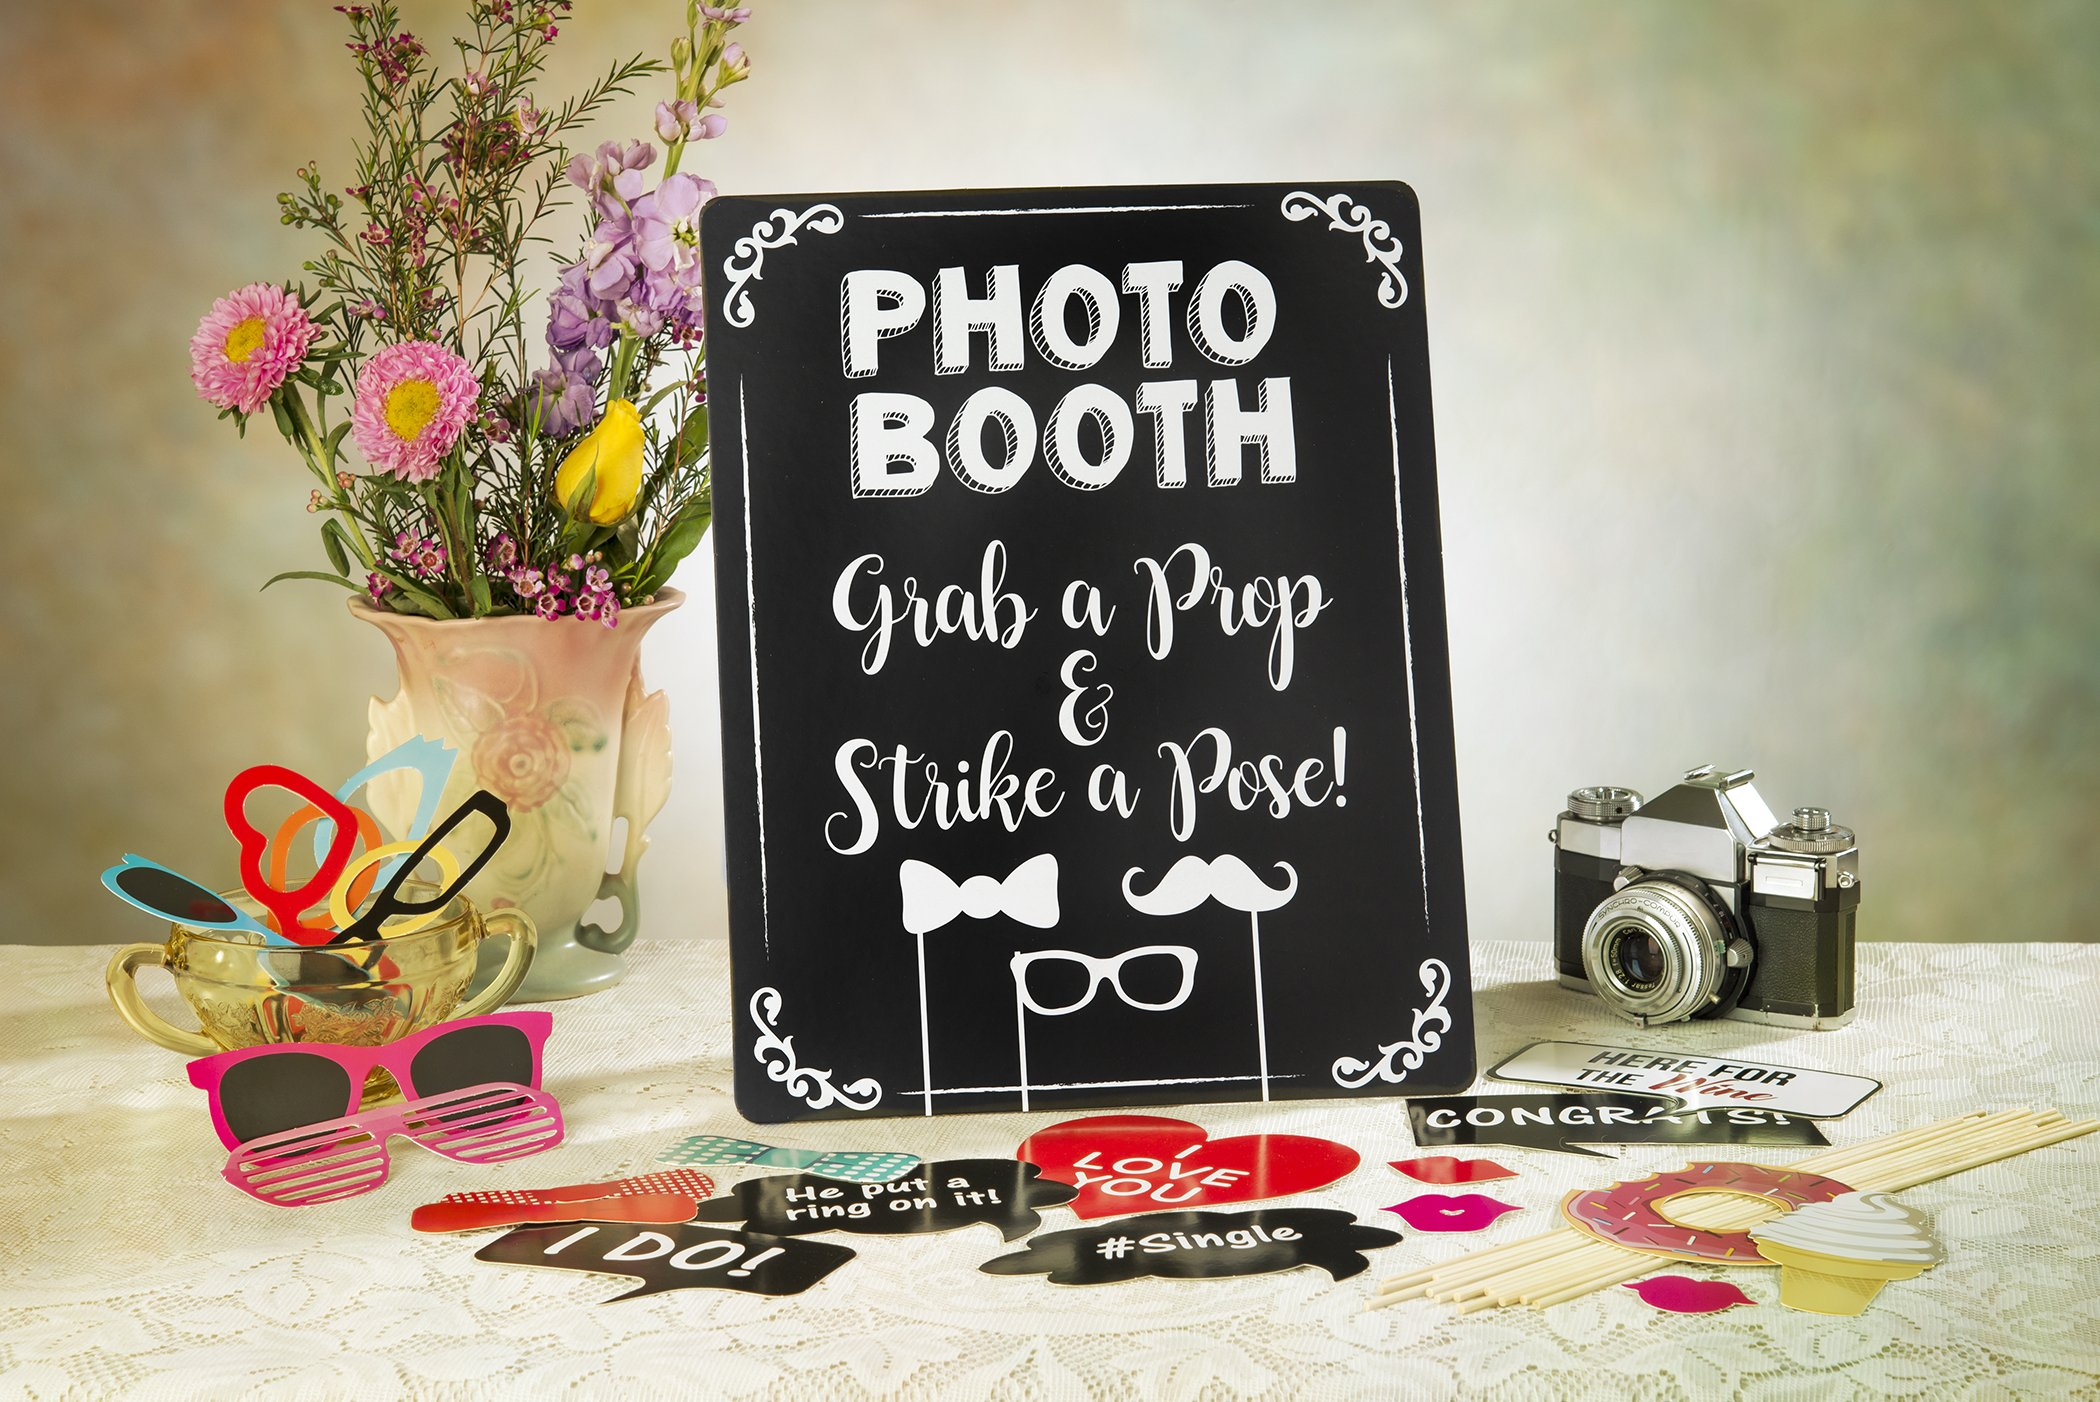 Wedding Photo Booth Props - Set with Chalkboard Style Black Sign, Wooden Sticks and Stand | 75 Pieces by Cumo (Image #5)